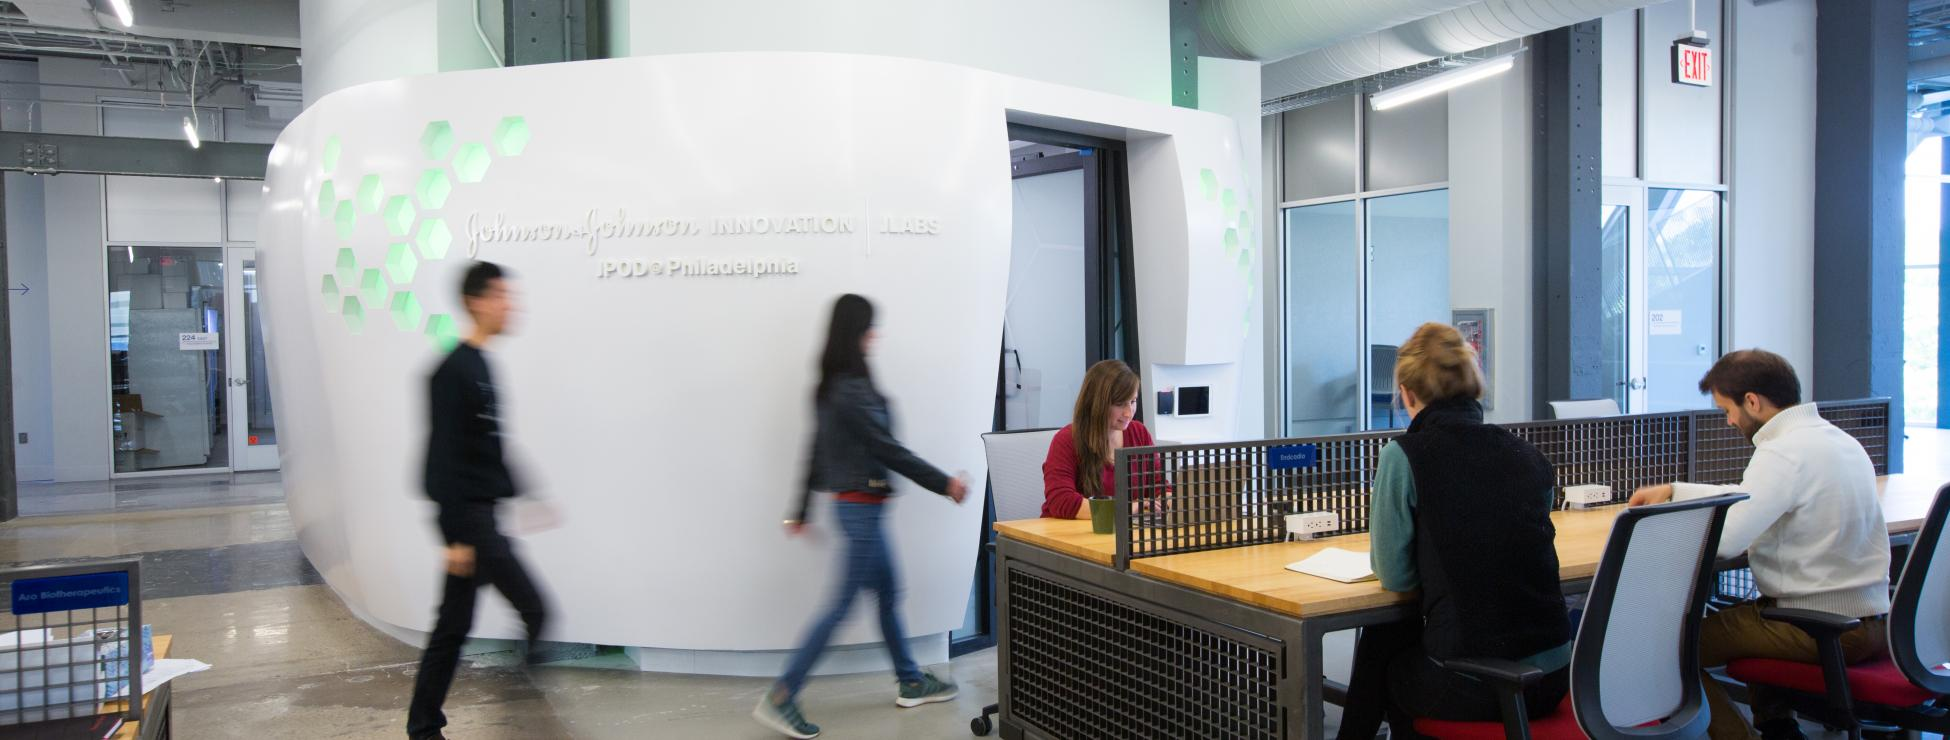 JPod is a feature of the Pennovation Center